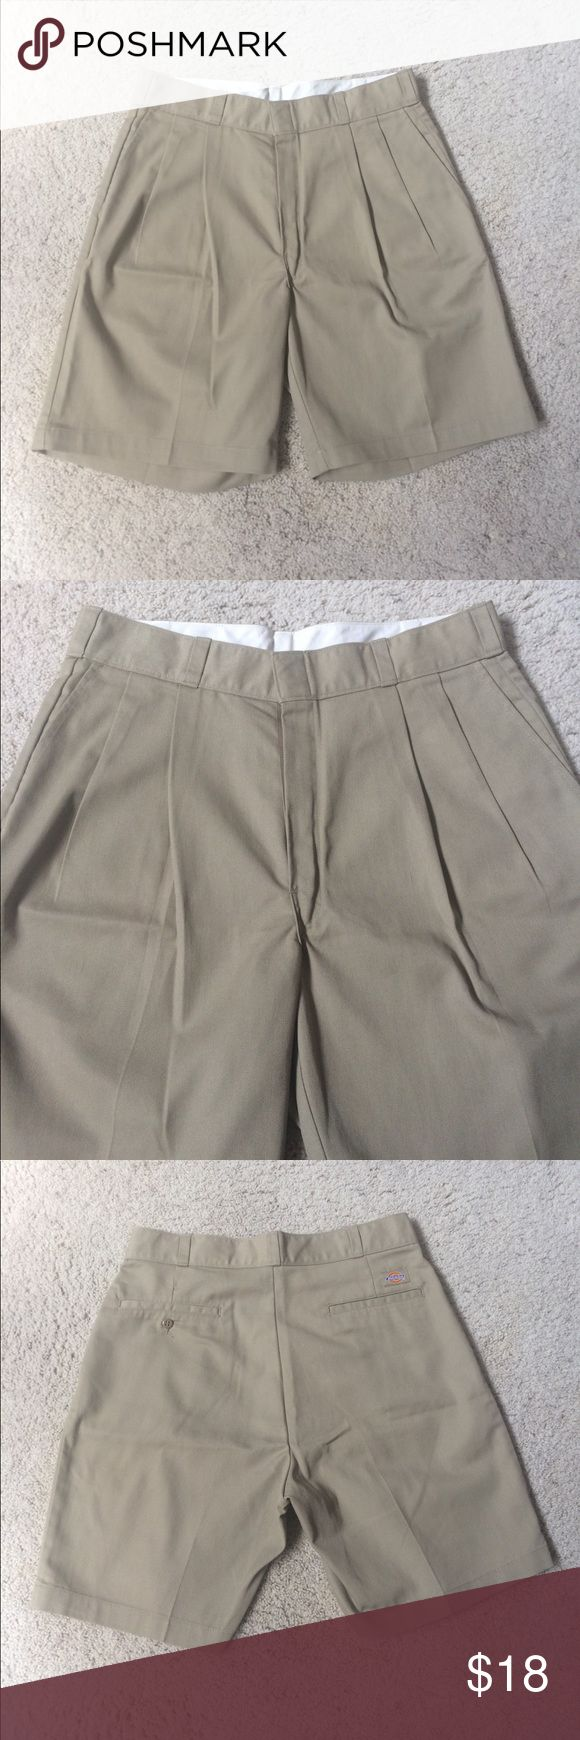 Dickies Pleated Front Tan Shorts Waist Size 33 Dickies Men's Pleated Front Tan Colored Shorts. Waist size 33. Made in Nicaragua. Are in very gently used condition, barely any wear. No stains or rips. Measurements- WAIST: 16.5 in. LENGTH: 20.5 in. INSEAM: 8 in. RISE: 12.5 in. If you have any questions please don't hesitate to ask! Dickies Shorts